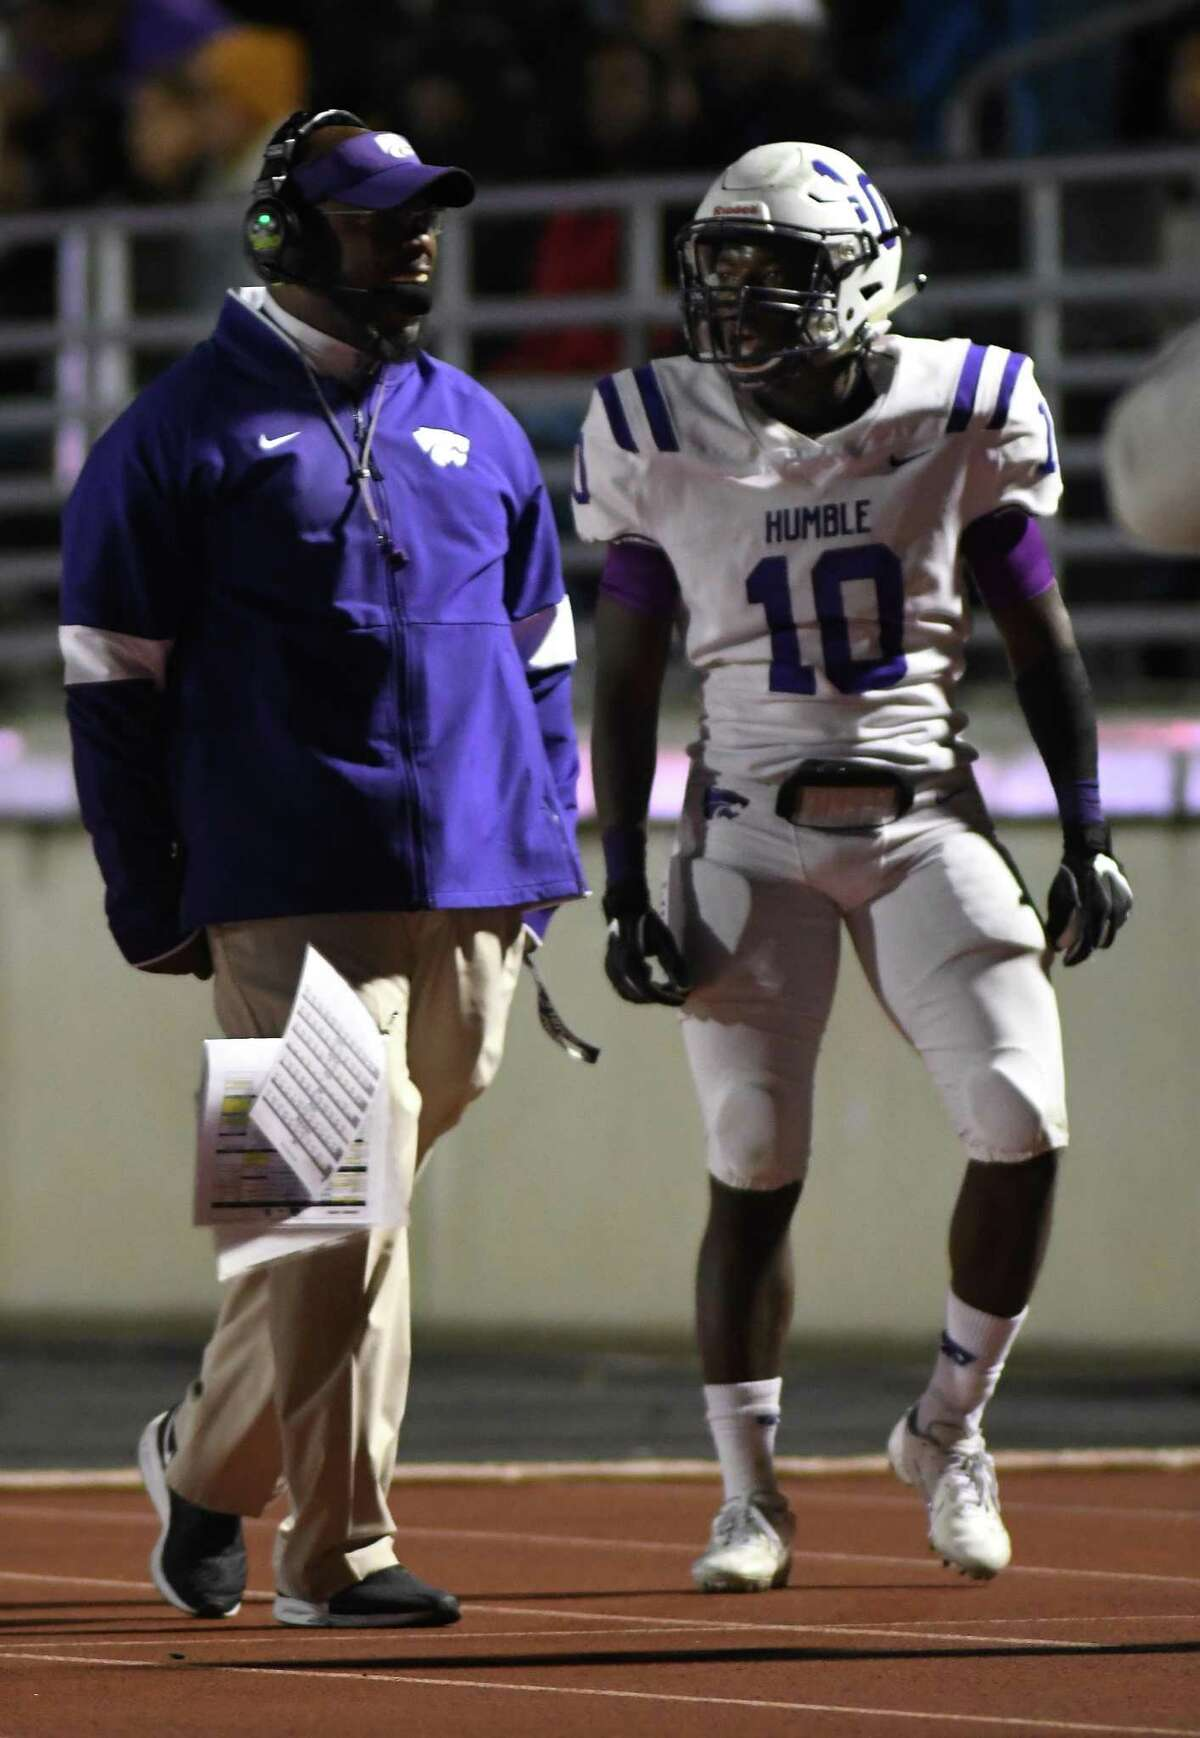 Humble Head Football Coach Charles West, left, congratulates senior wide receiver Donald Harper (10) after his touchdown catch in the 4th quarter of their District 22-6A matchup with Summer Creek at Turner Stadium on Oct. 11, 2019